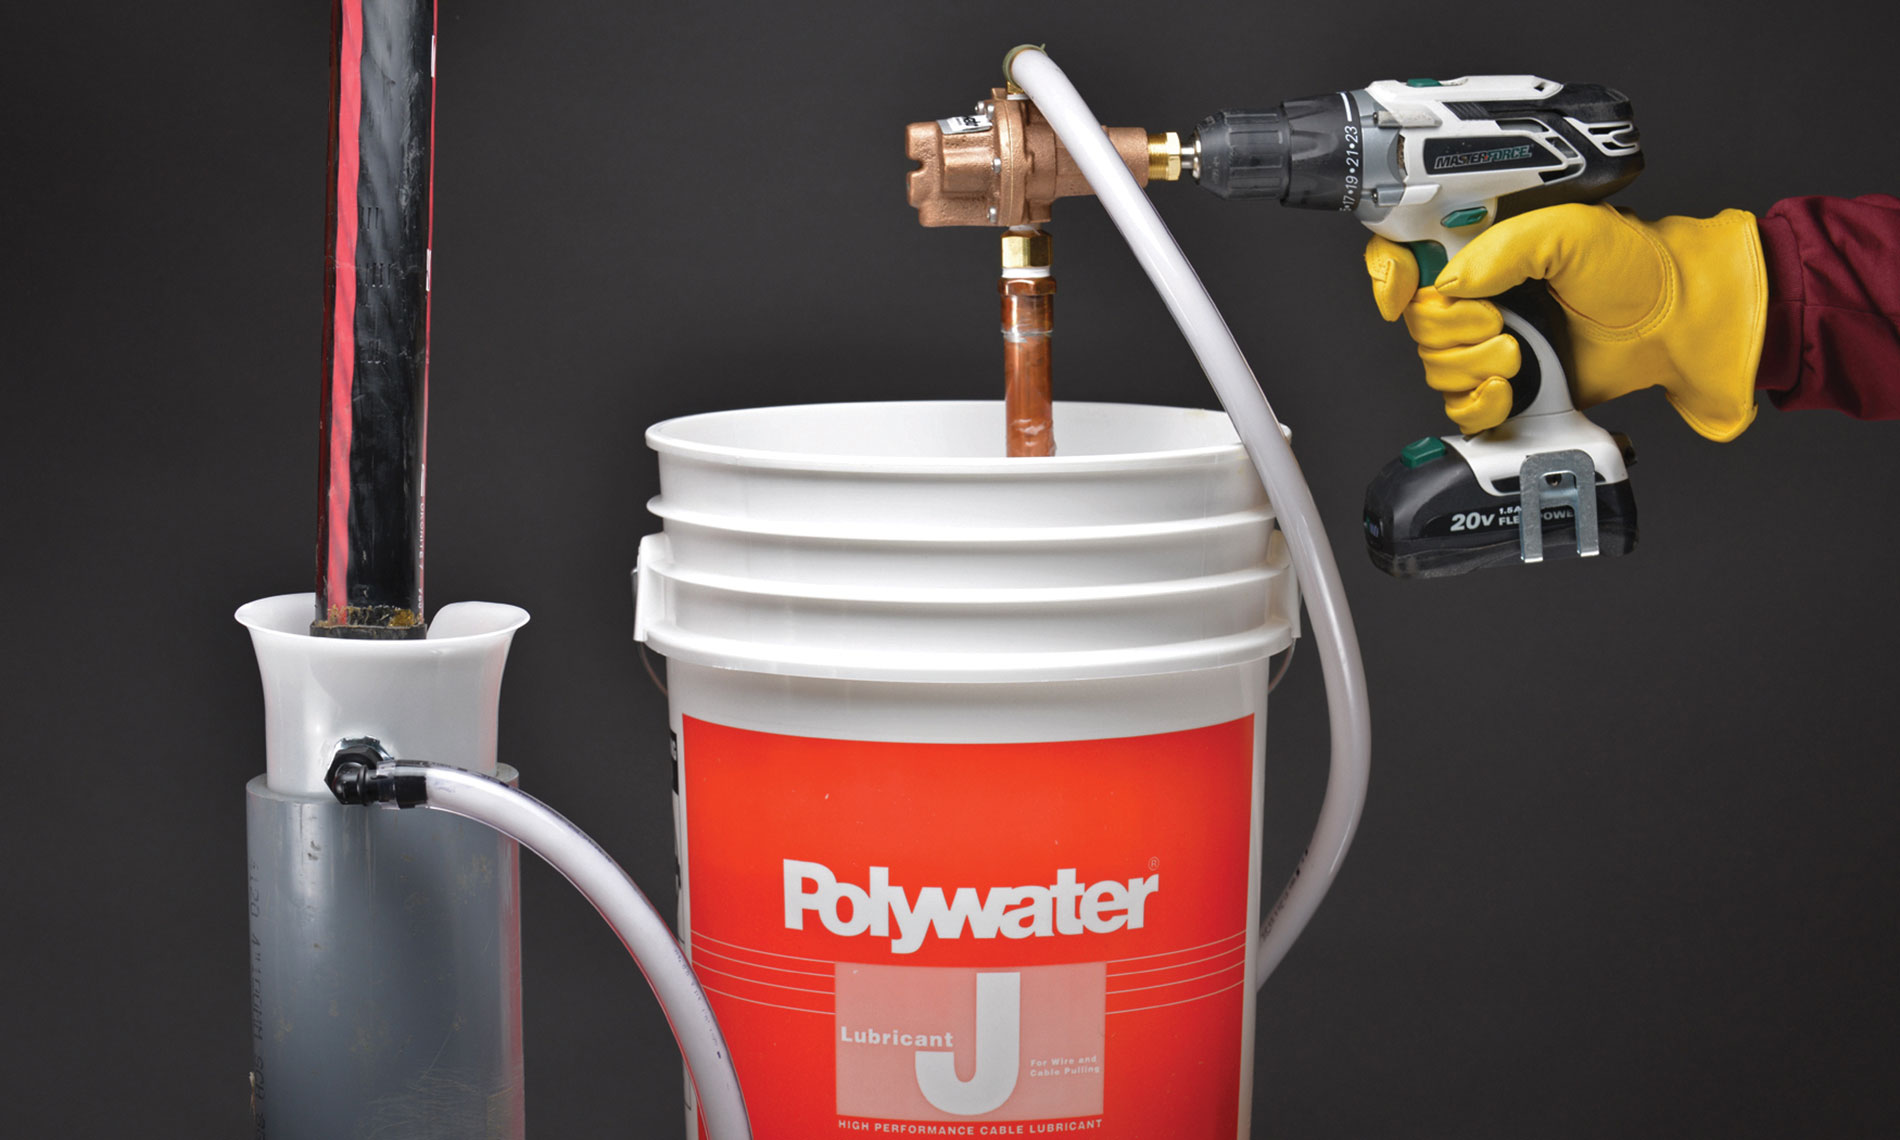 Polywater J cable pulling lubricant is deployed with the Polywater LP-D5 lubricant pump, which runs off a battery-powered drill and evenly coats cables throughout the cable pull.